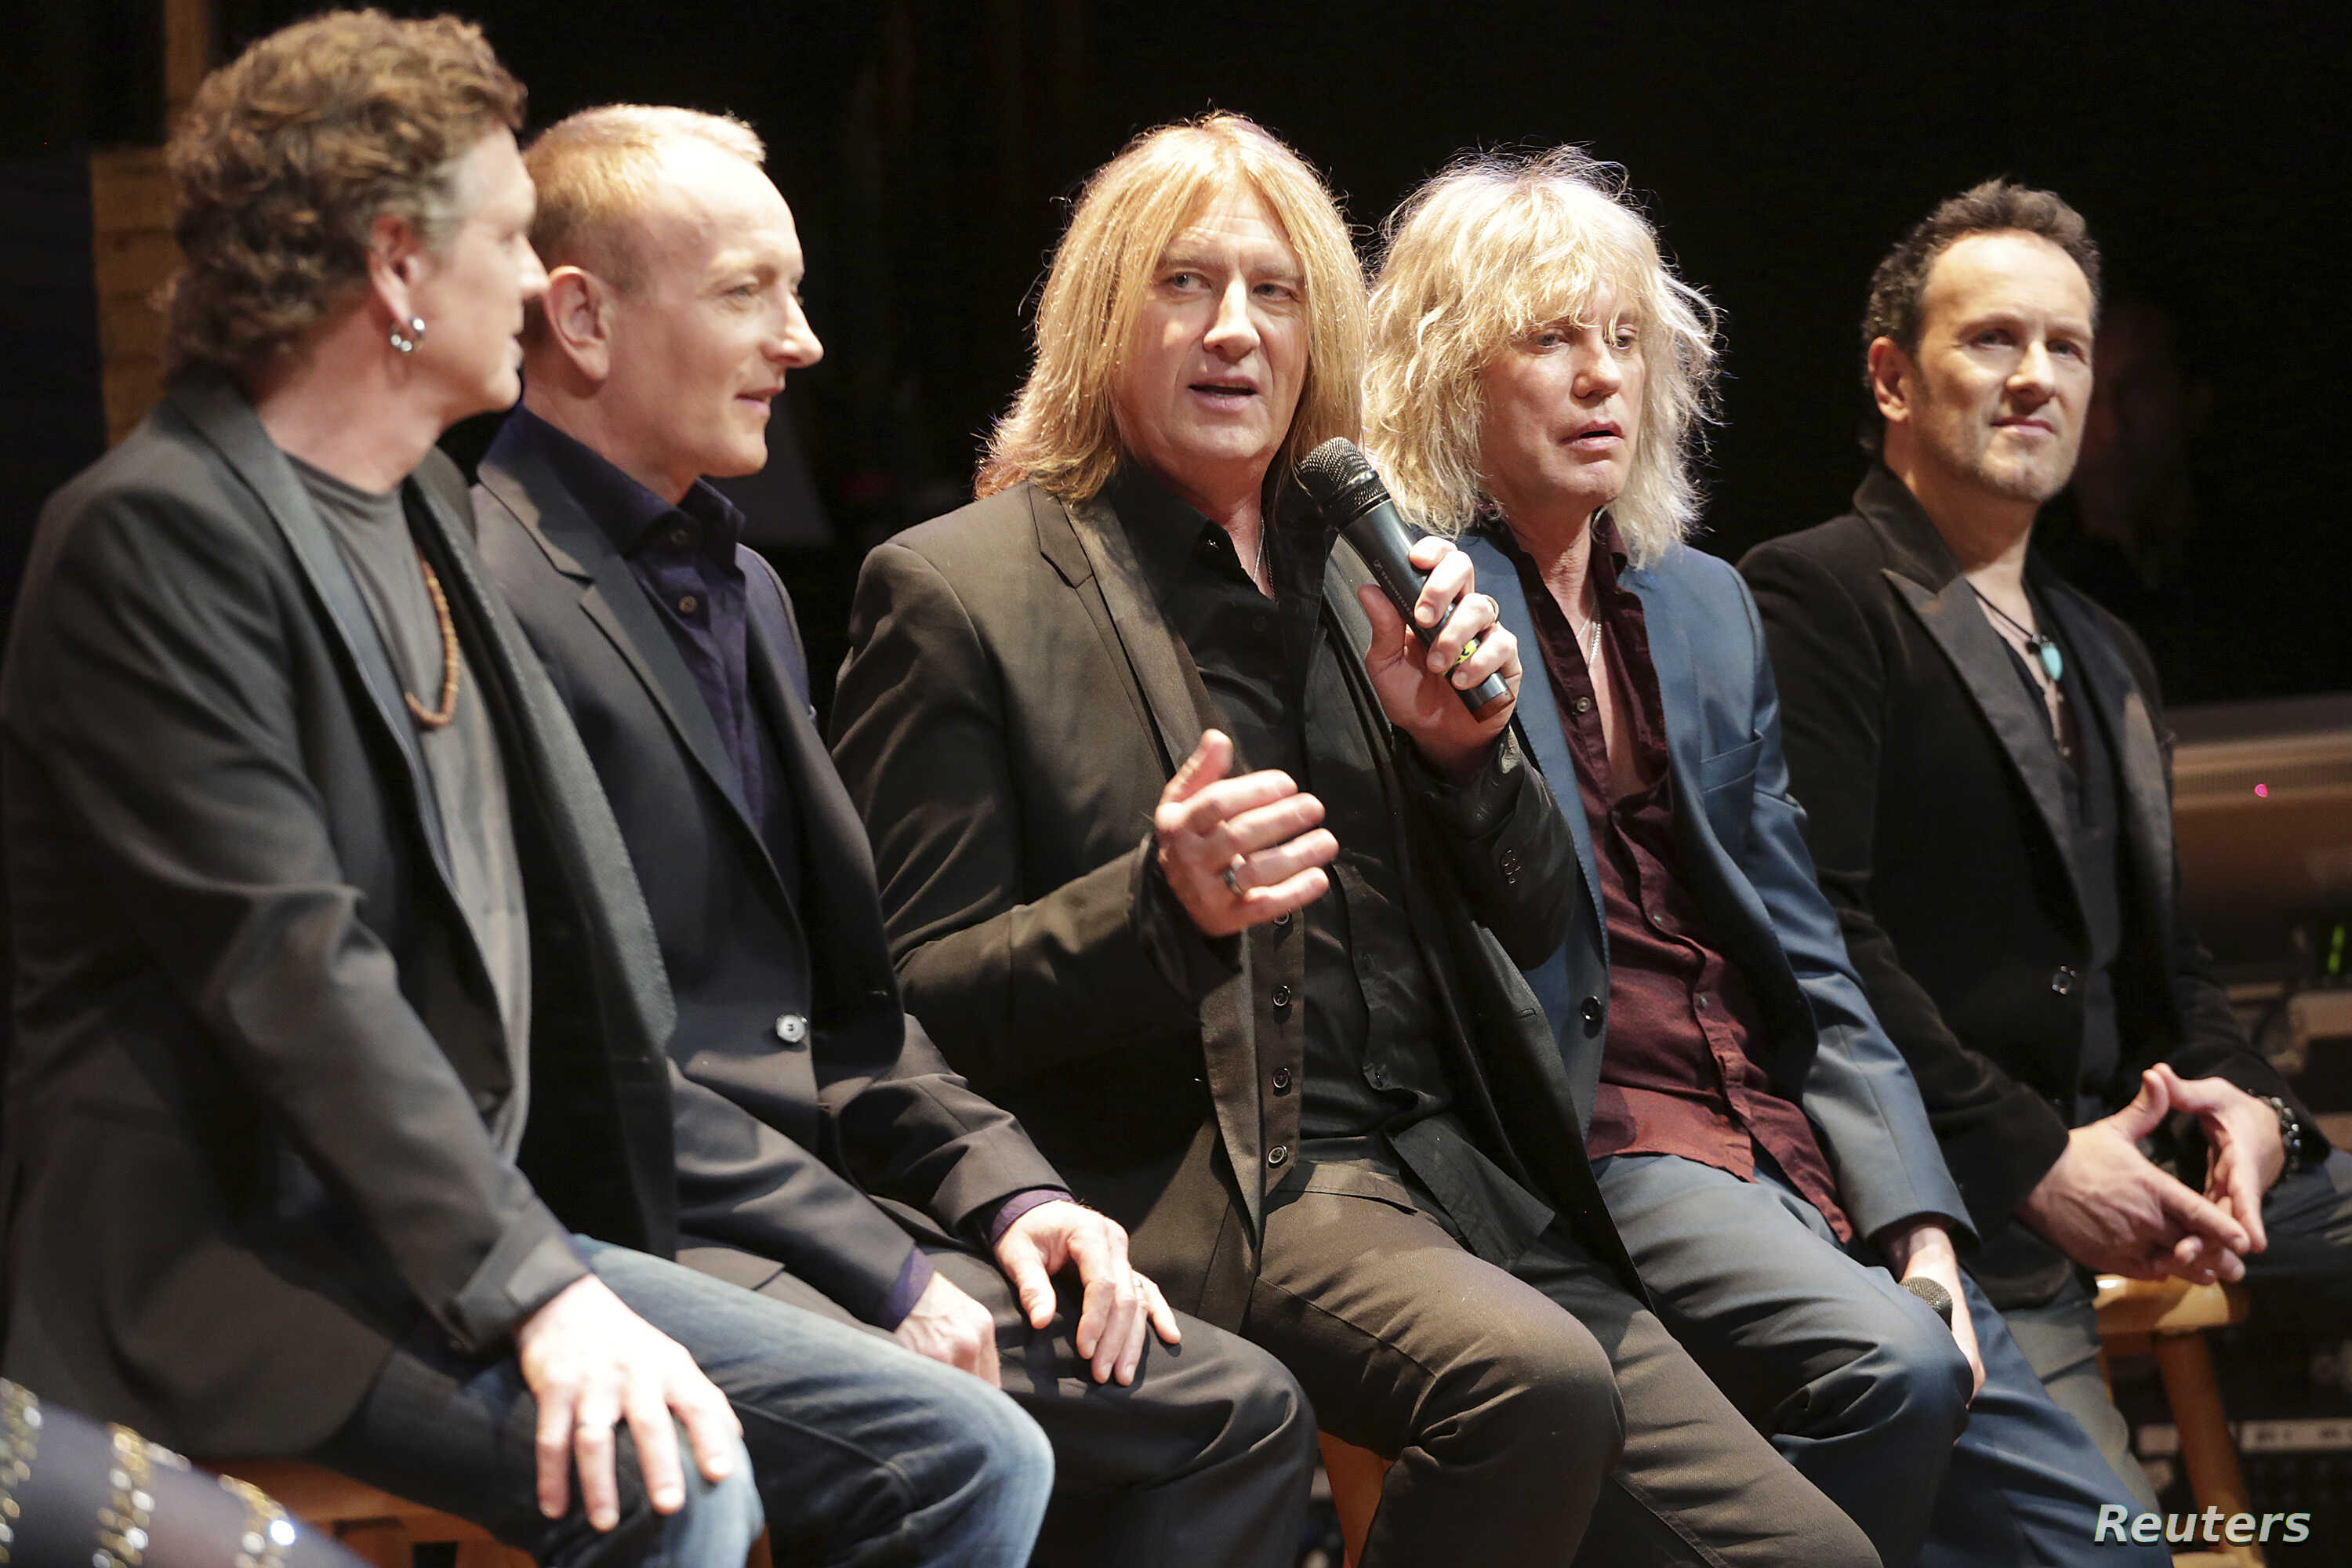 FILE - Rick Allen (L-R), Phil Collen, Joe Elliott, Rick Savage and Vivian Campbell of Def Leppard speak on stage at the House of Blues in West Hollywood, California, March 17, 2014.